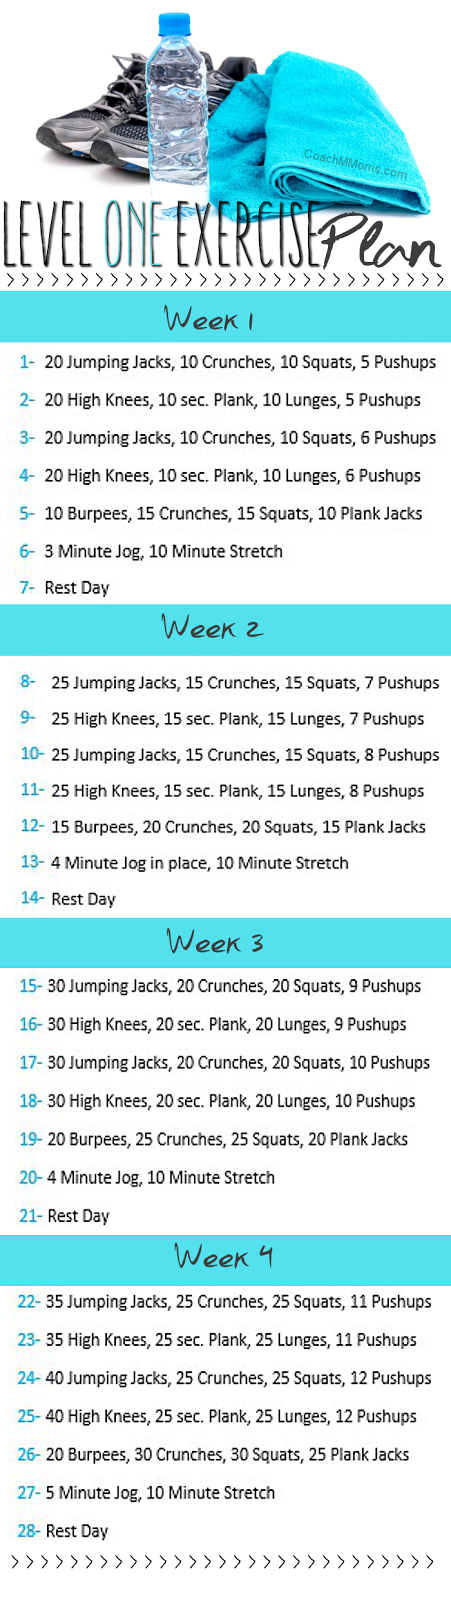 Getting Started on Your Fitness Plan